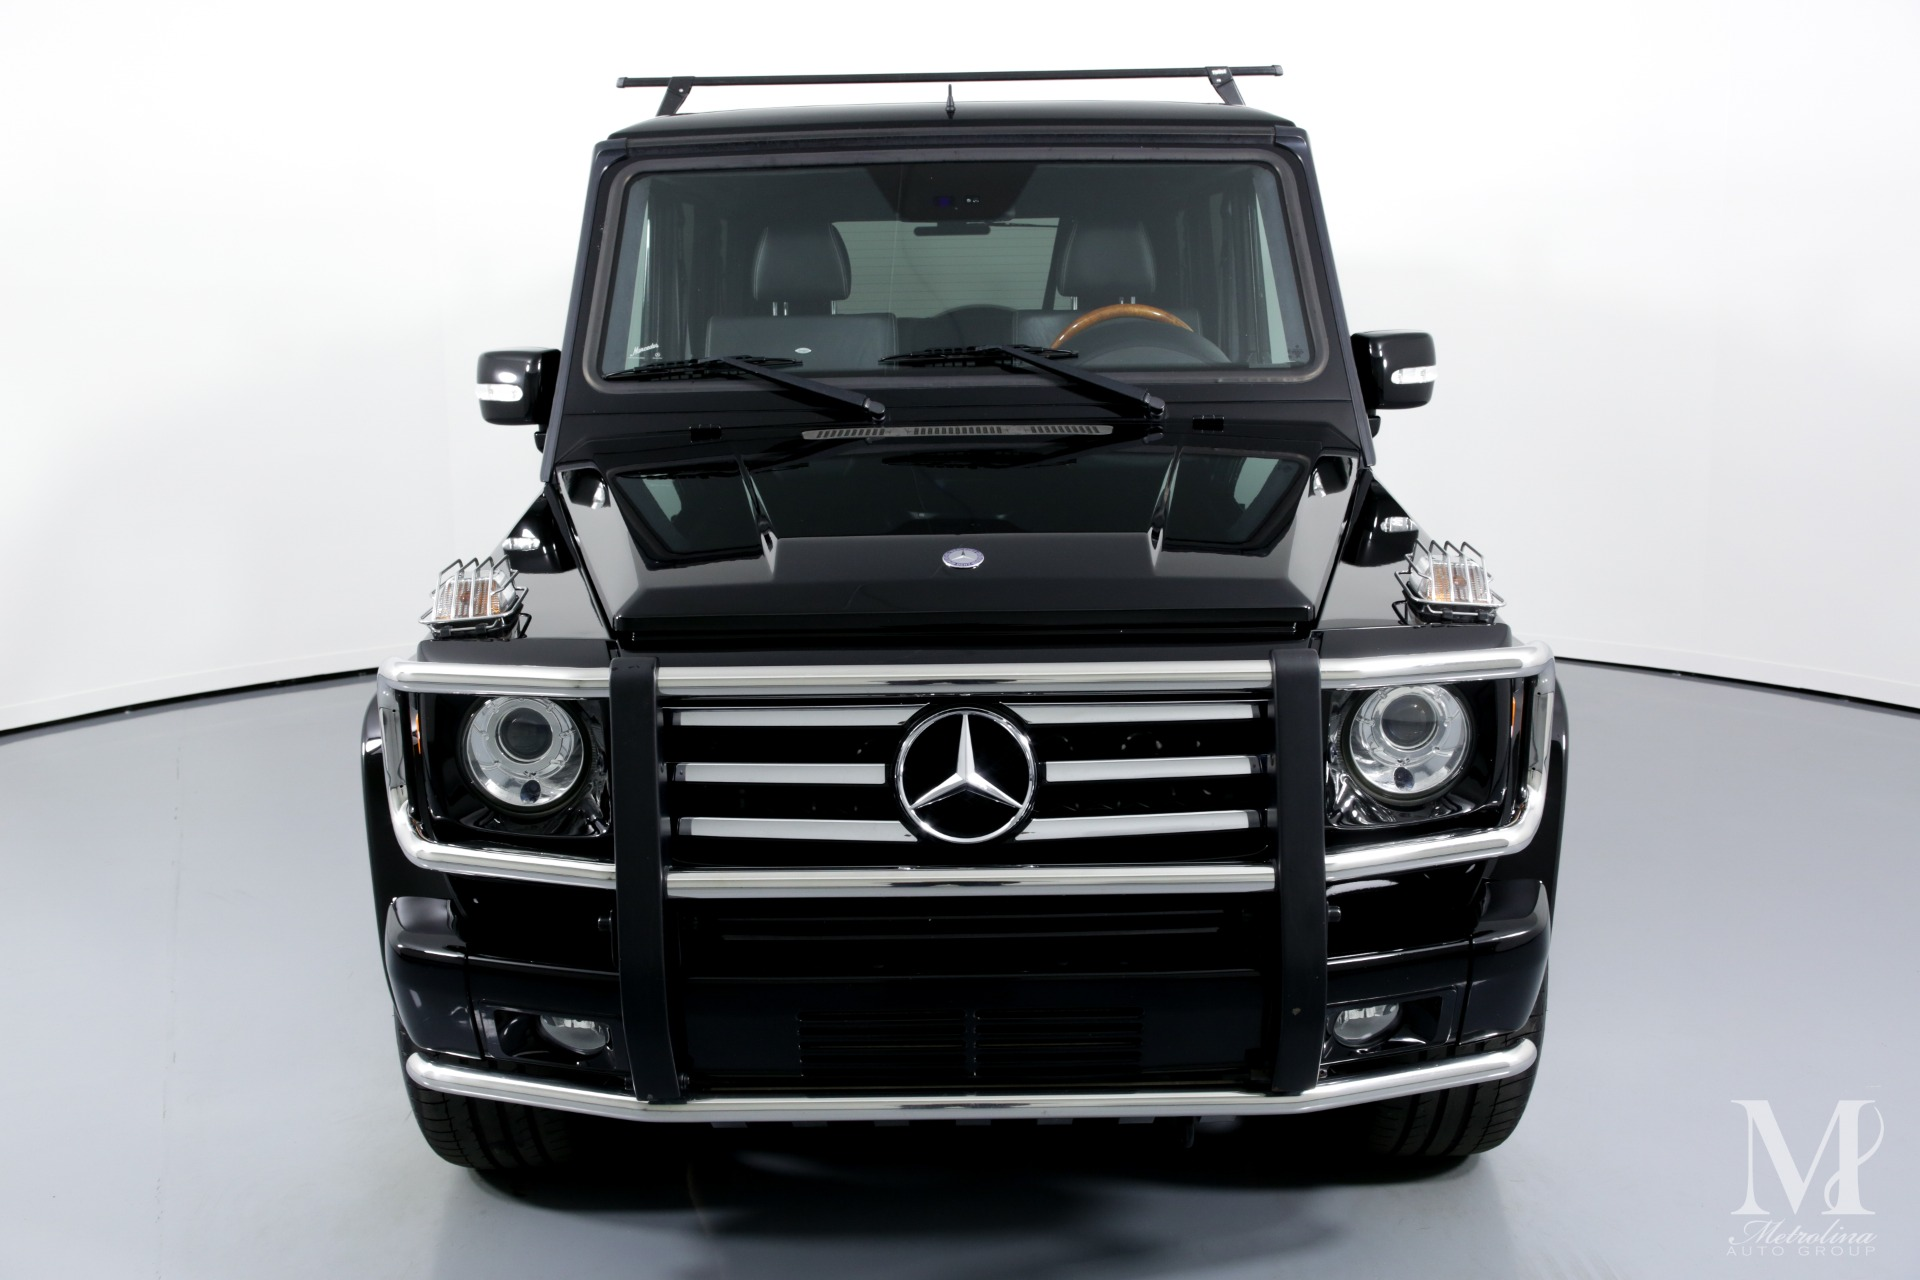 Used 2010 Mercedes-Benz G-Class G 55 AMG AWD 4MATIC 4dr SUV for sale $49,996 at Metrolina Auto Group in Charlotte NC 28217 - 3